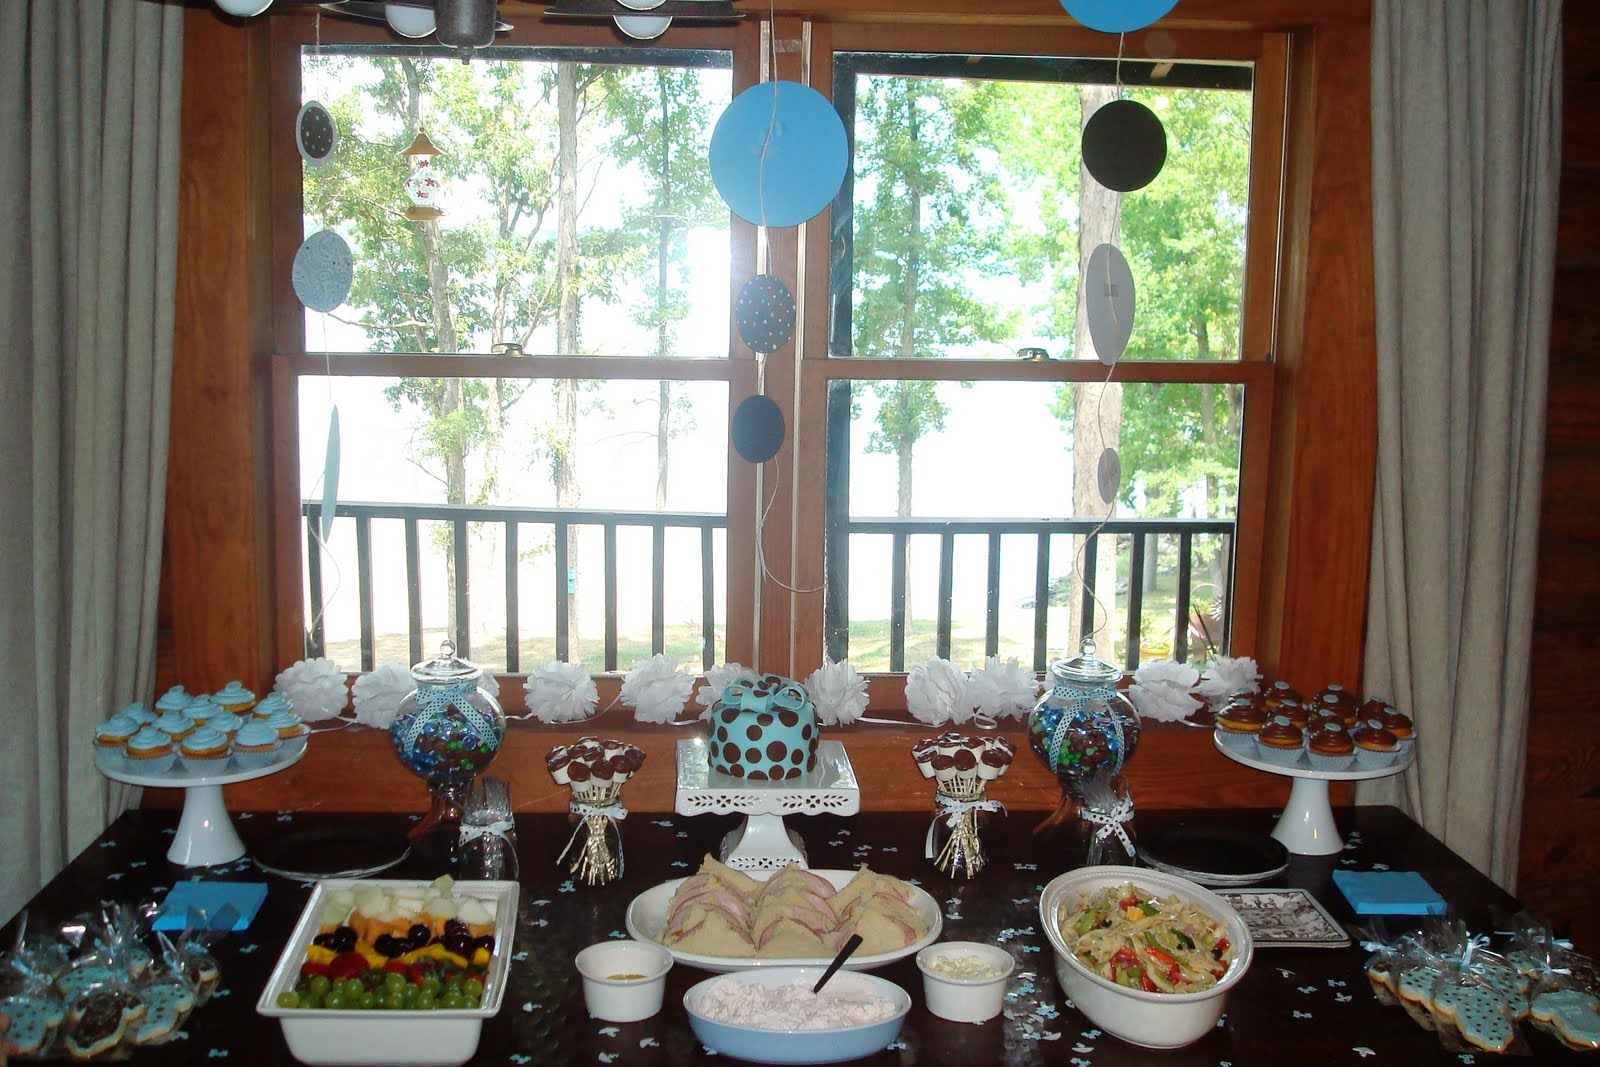 Cake Decorating Classes Near Charlotte Nc : Cakes By Diana in Charlotte NC,: blue and brown dessert table